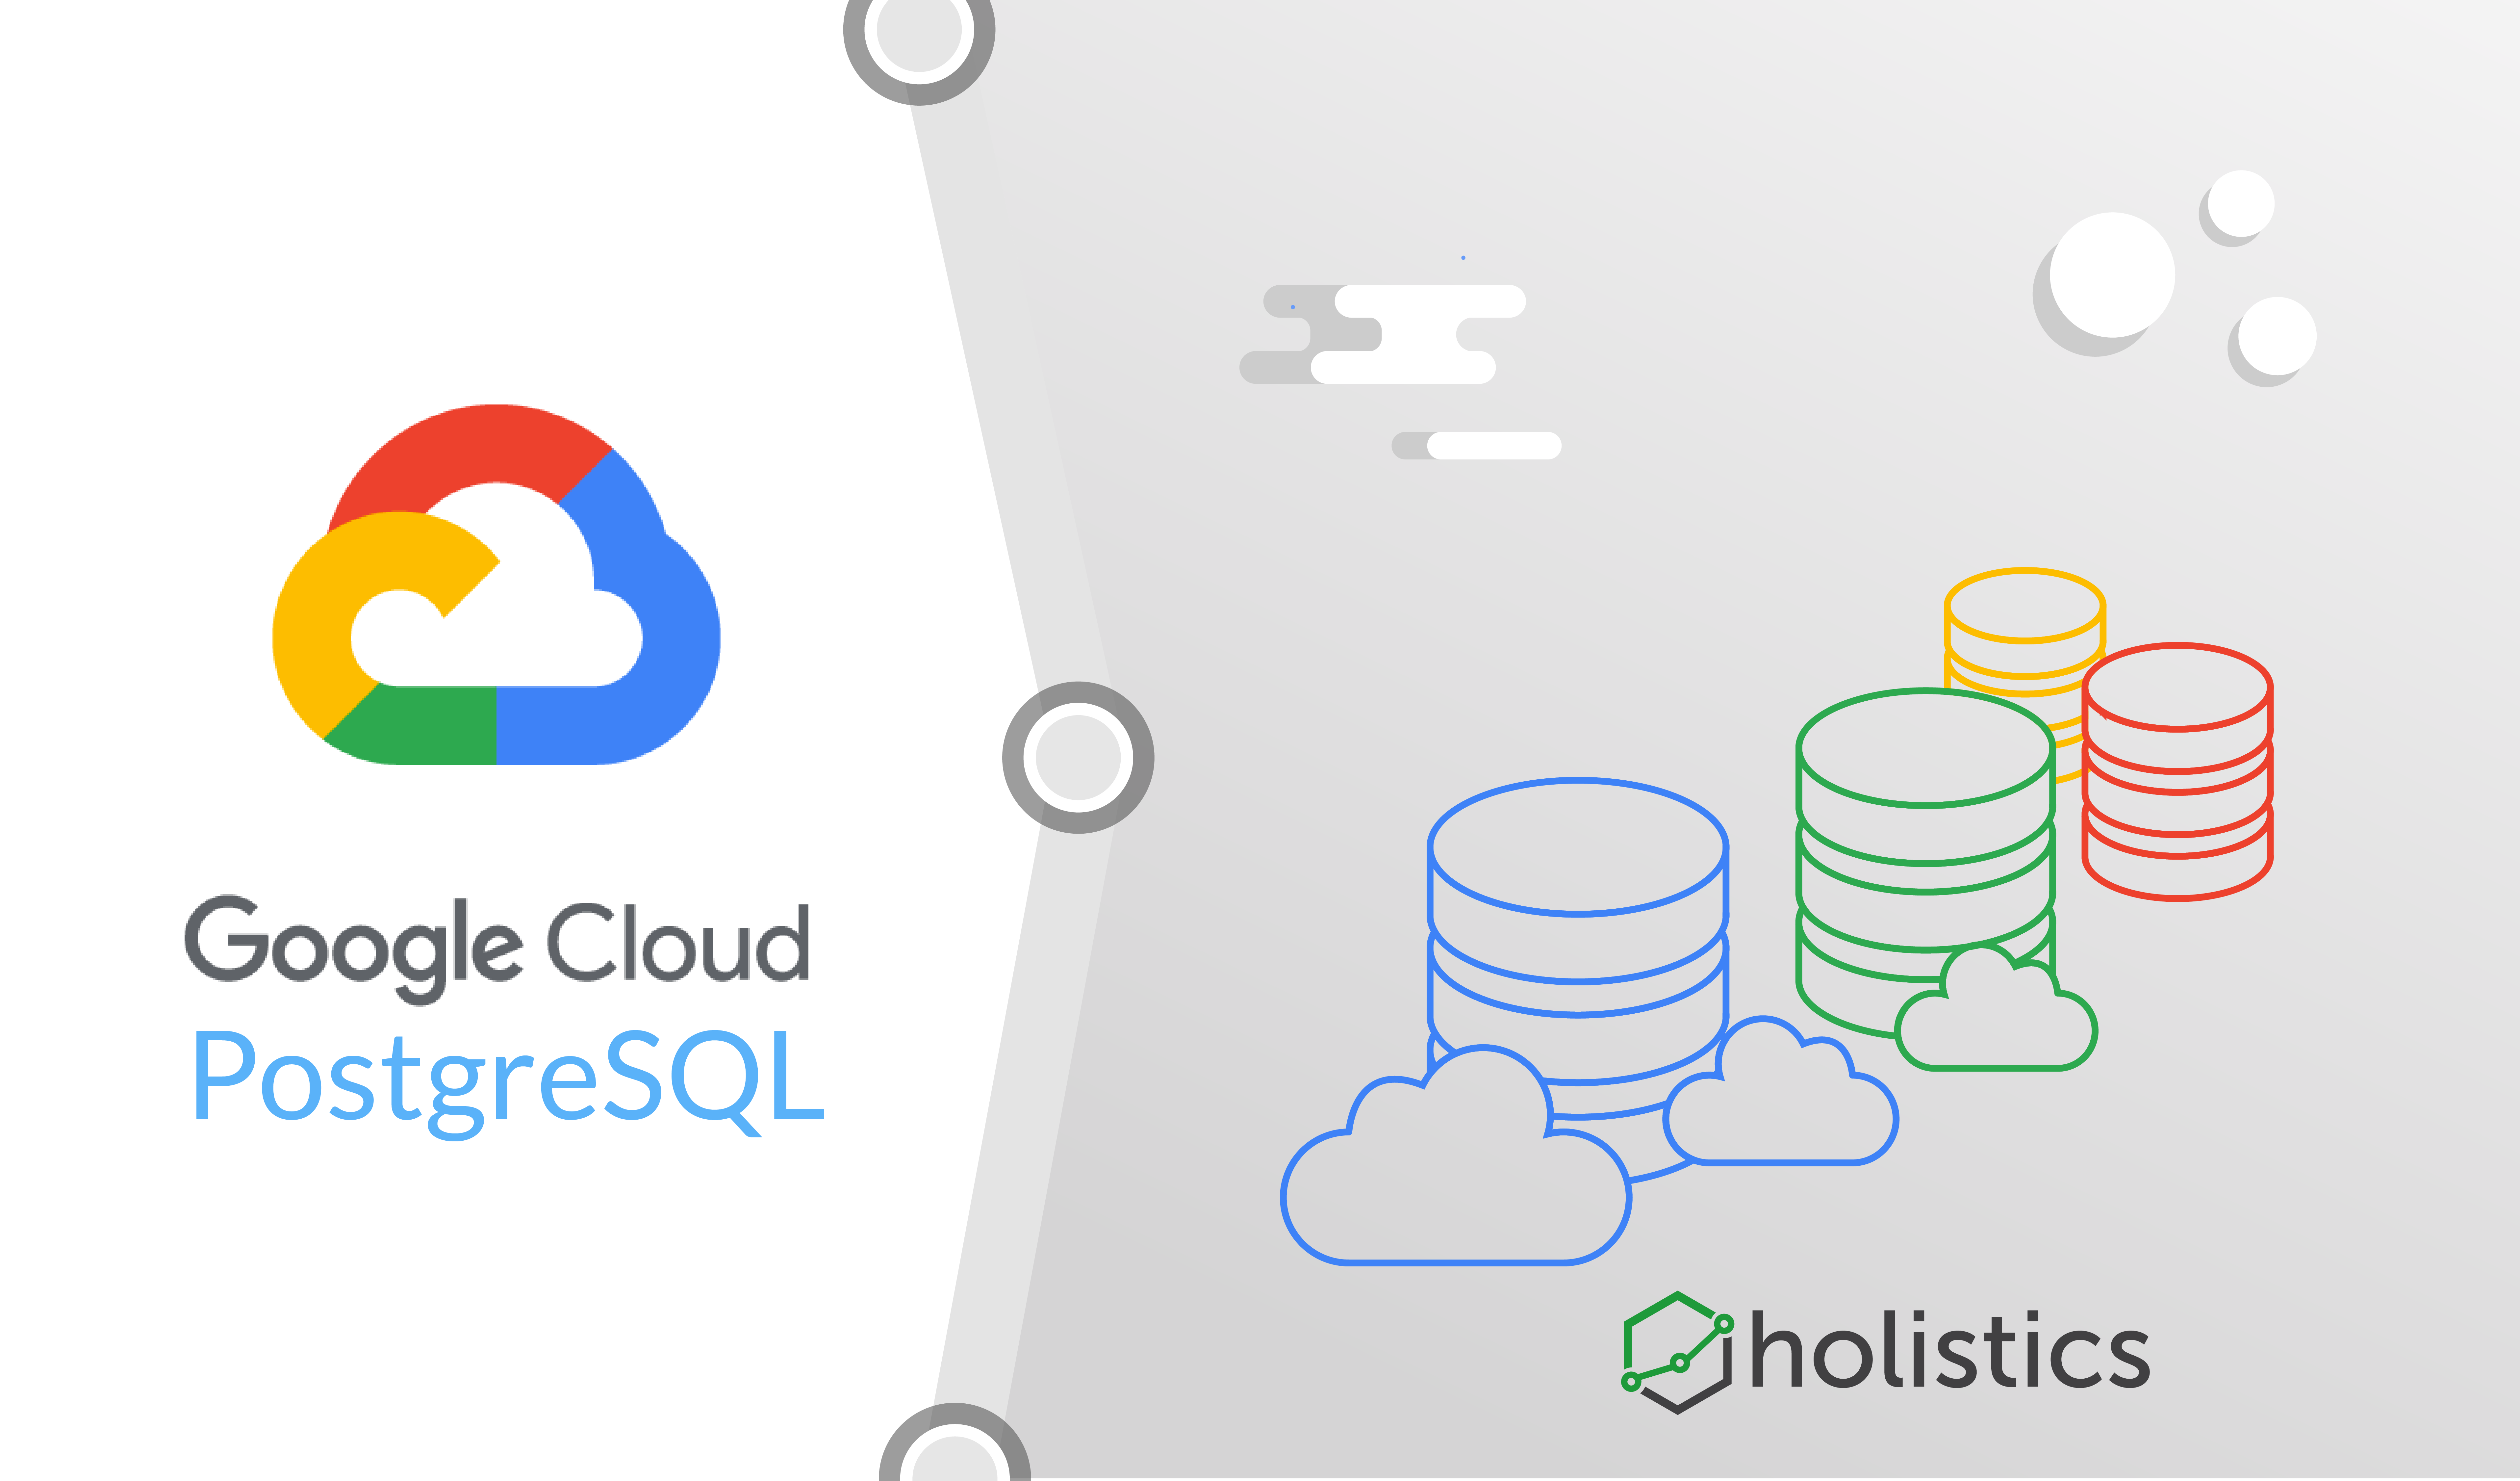 How to Set-up your own Google Cloud PostgreSQL database and